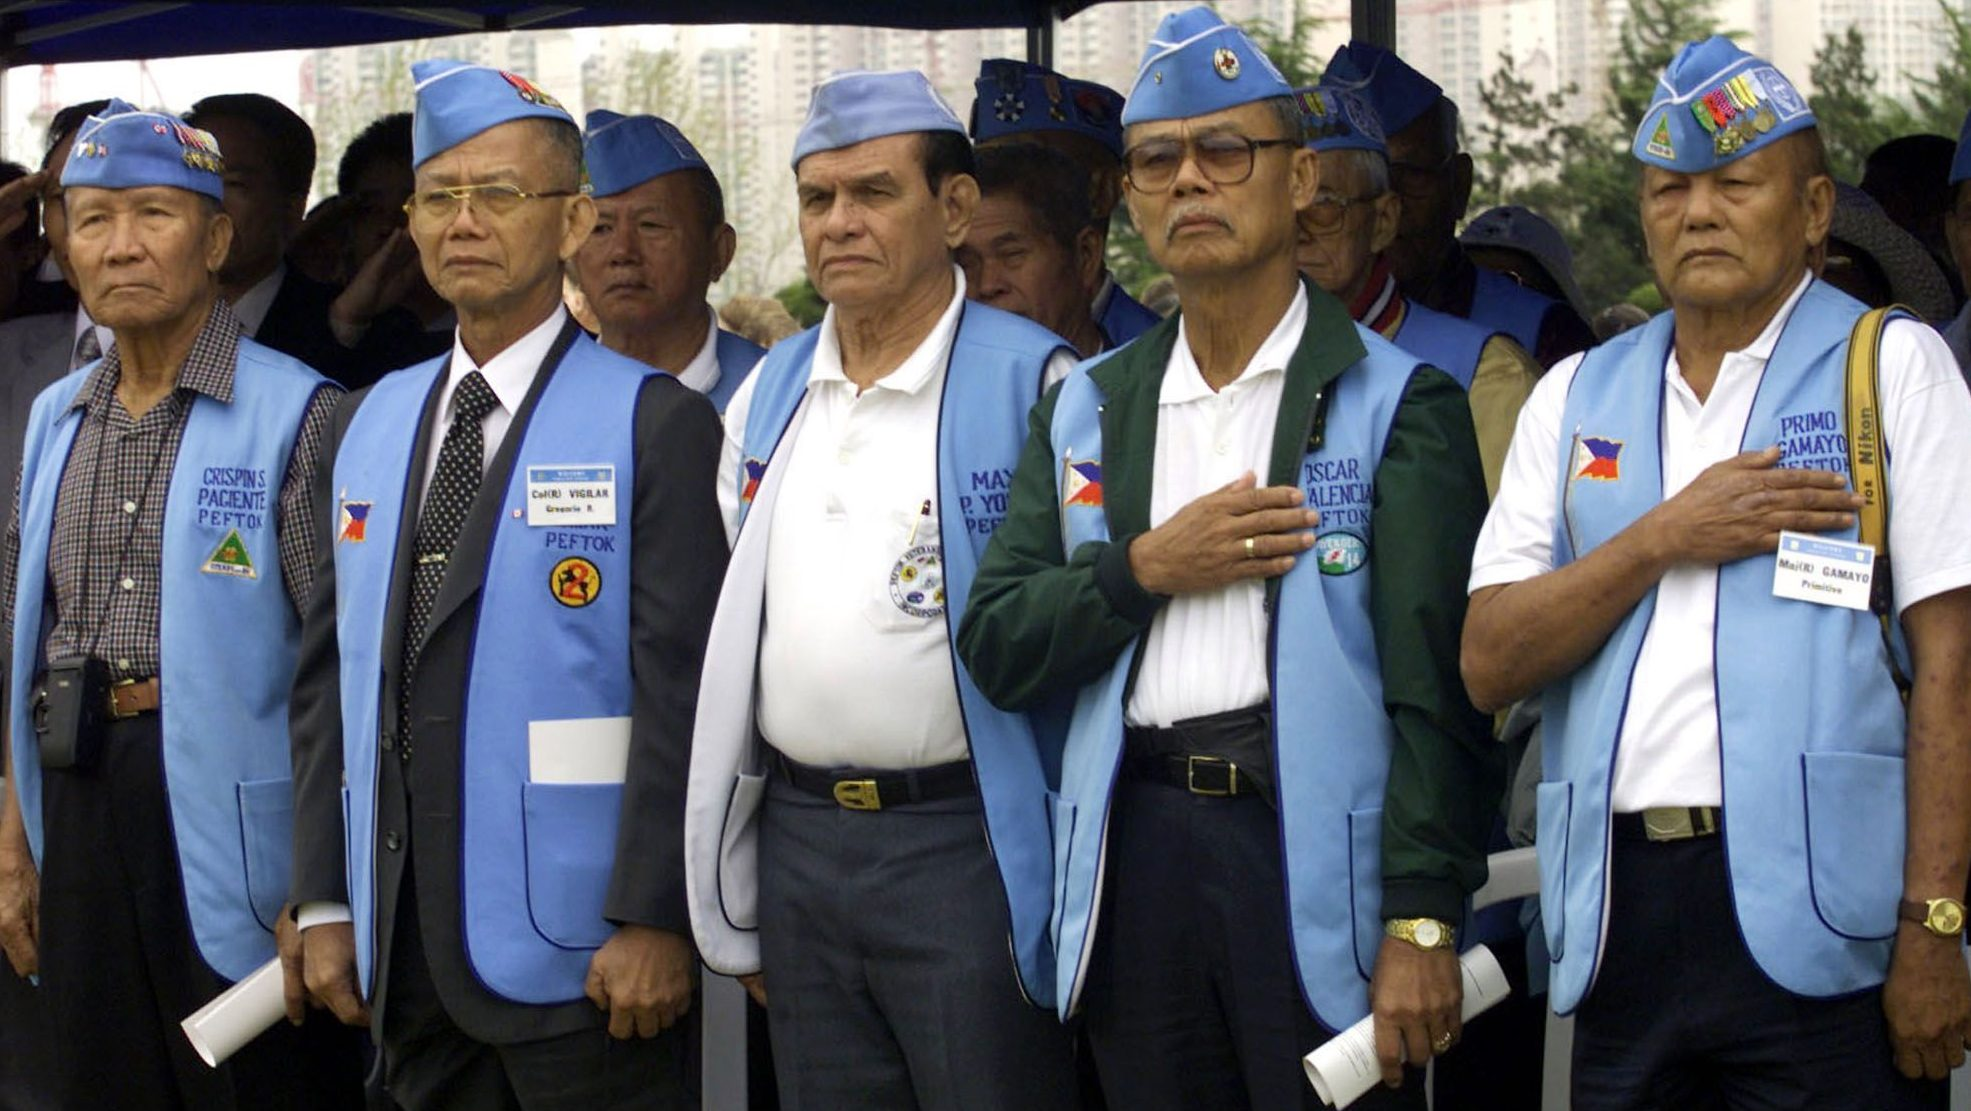 Philippine veterans of Korean War stand at attention during a ceremony to commemorate the 50th anniversary of their participation in the Korean War at the United Nations Memorial Cemetery in southern port city of Pusan, South Korea April 20, 2001. North and South Korea are technically at war after their 1950-53 ended in a truce and not in a peace agreement.